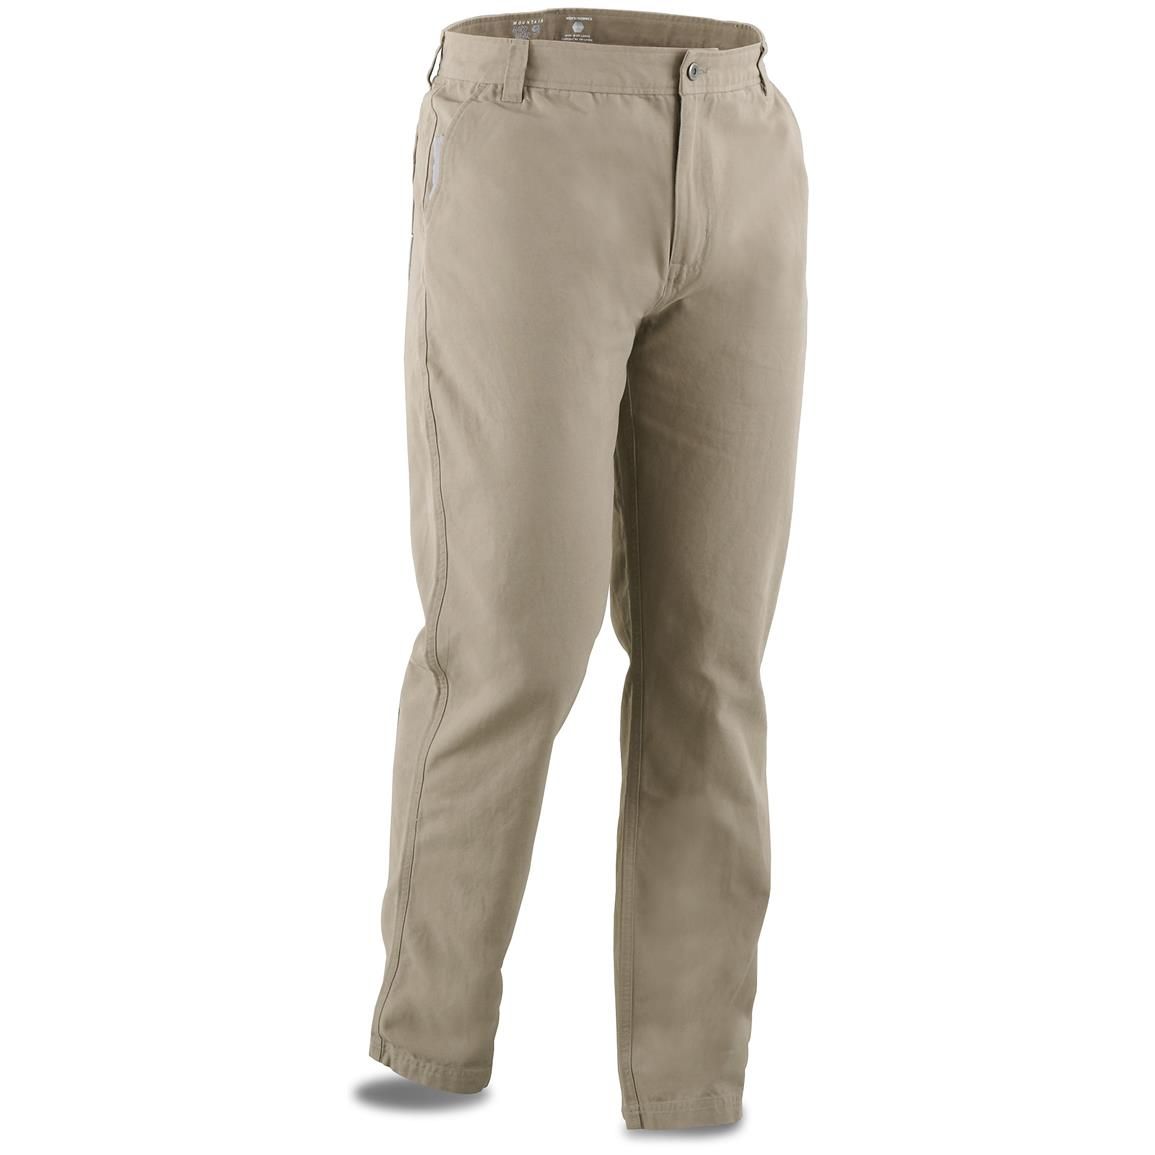 Mountain Hardwear Cordoba Causal Pants, Khaki